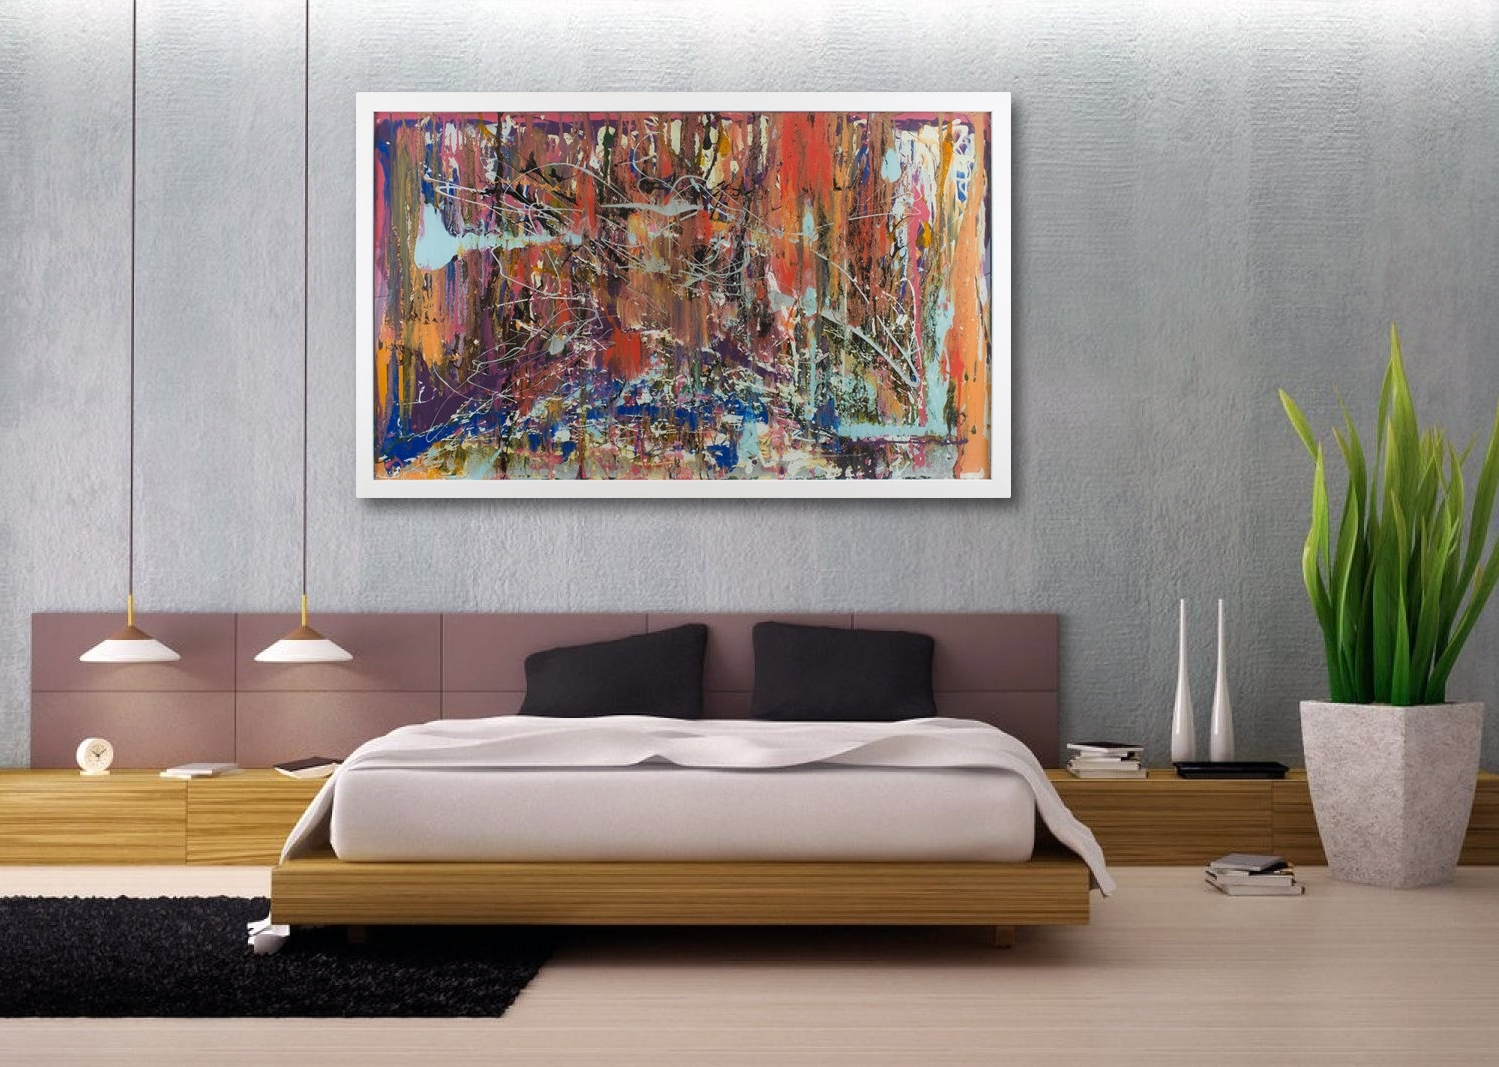 Most Recent Abstract Wall Art For Bedroom Pertaining To Innovative Way Modern Wall Decor Room — Joanne Russo Homesjoanne (View 4 of 15)